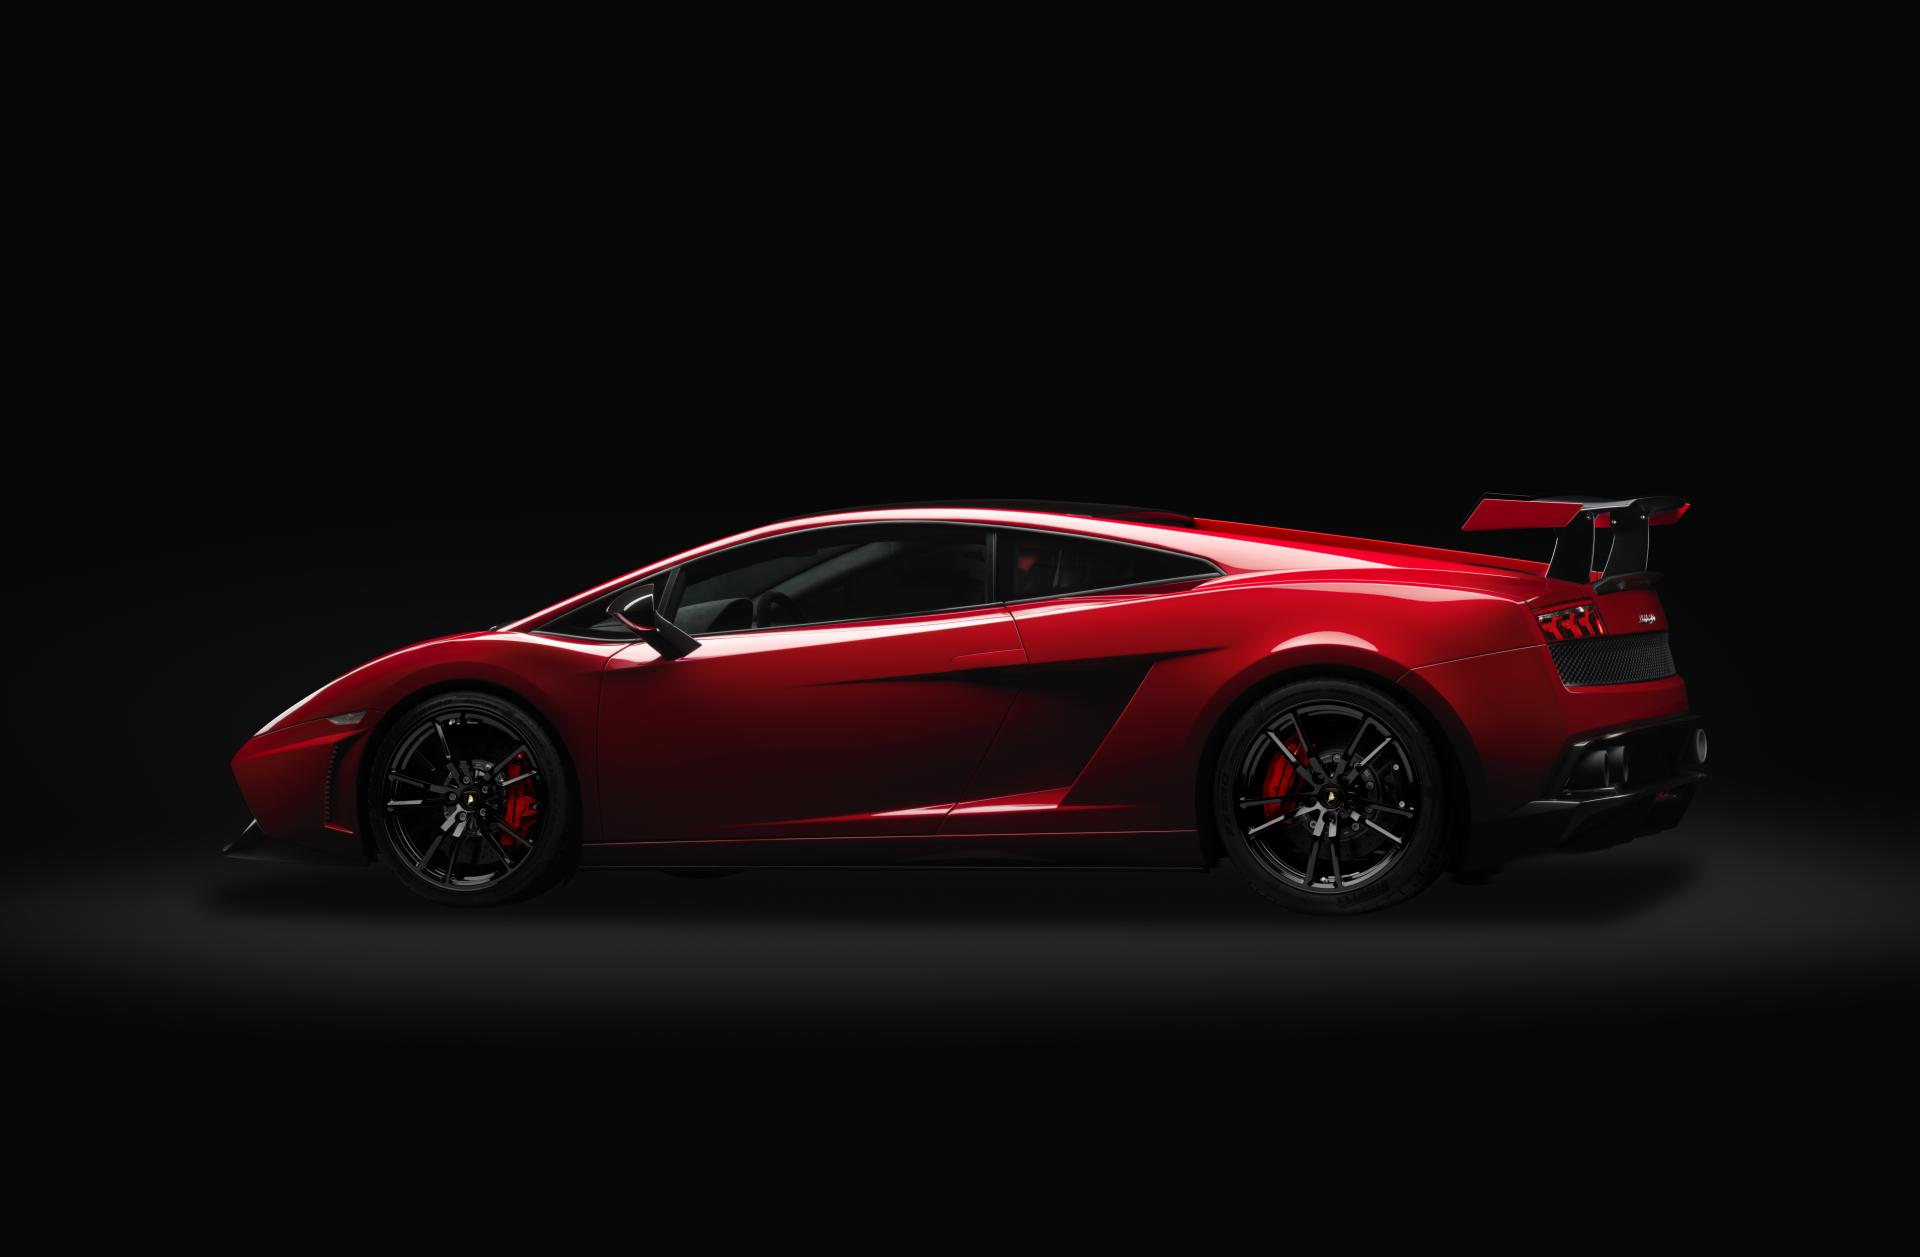 2012 Lamborghini Gallardo Lp 570 4 Super Trofeo Stradale News And